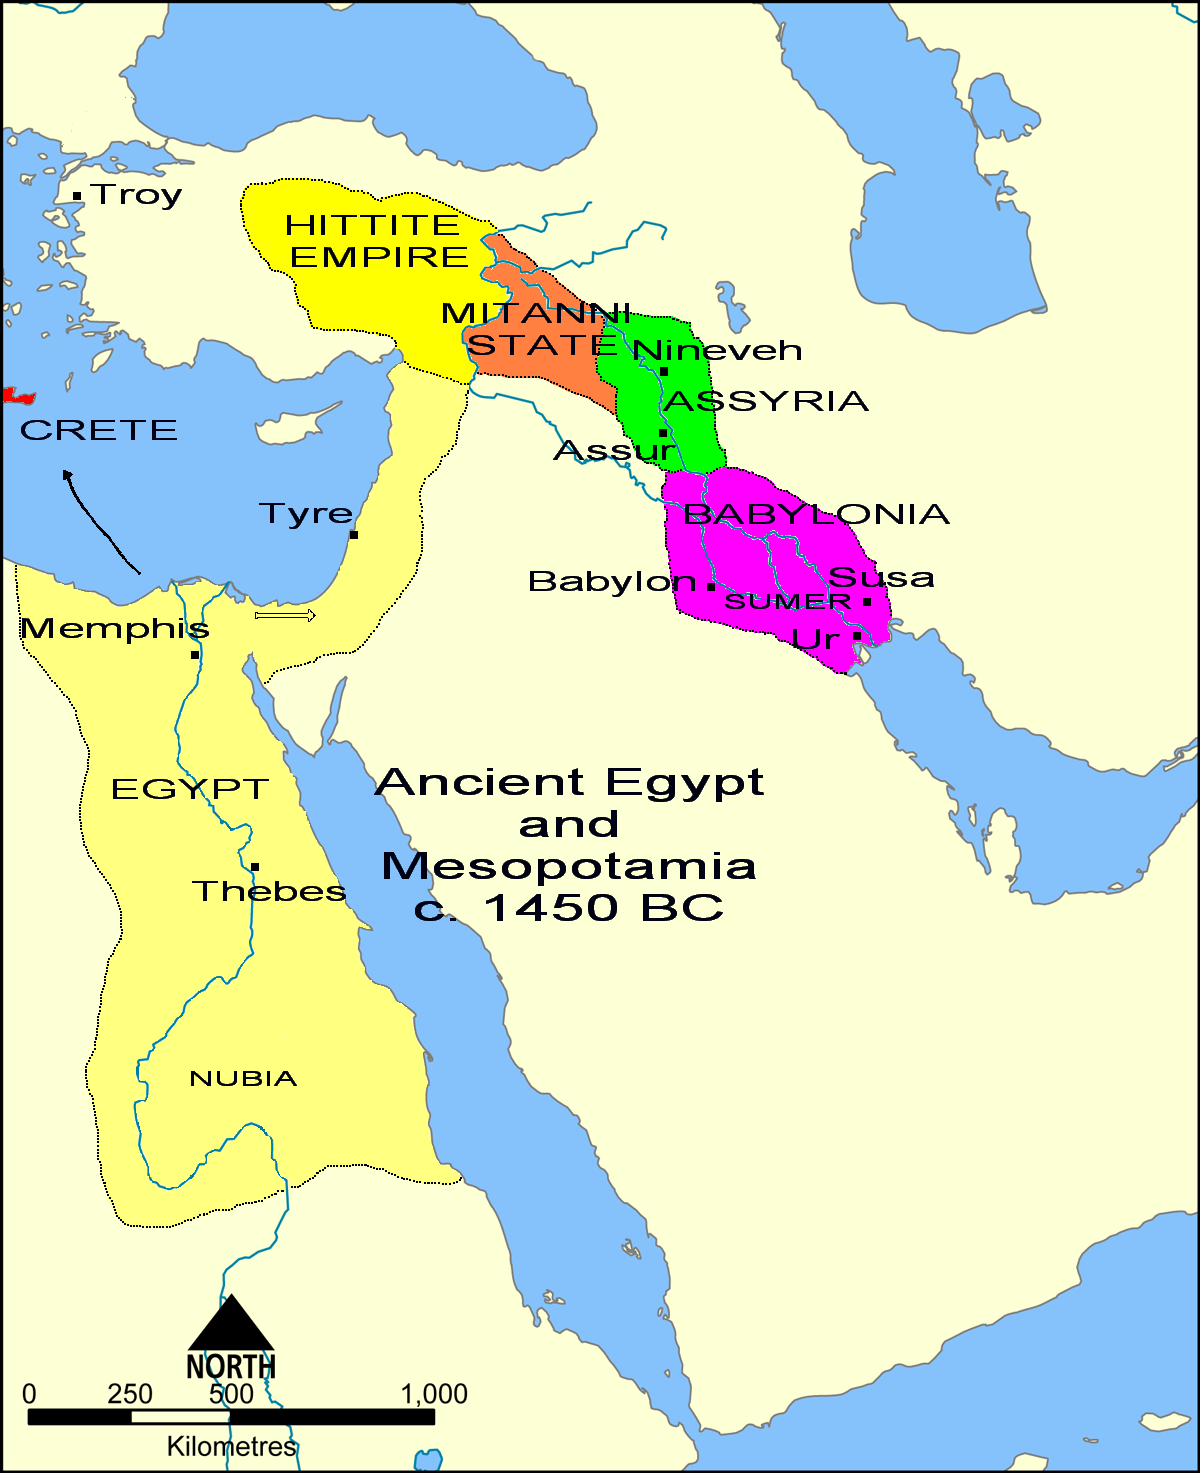 A map depicting the major people groups in control of the near east a map depicting the major people groups in control of the near east around 1450 bc gumiabroncs Images